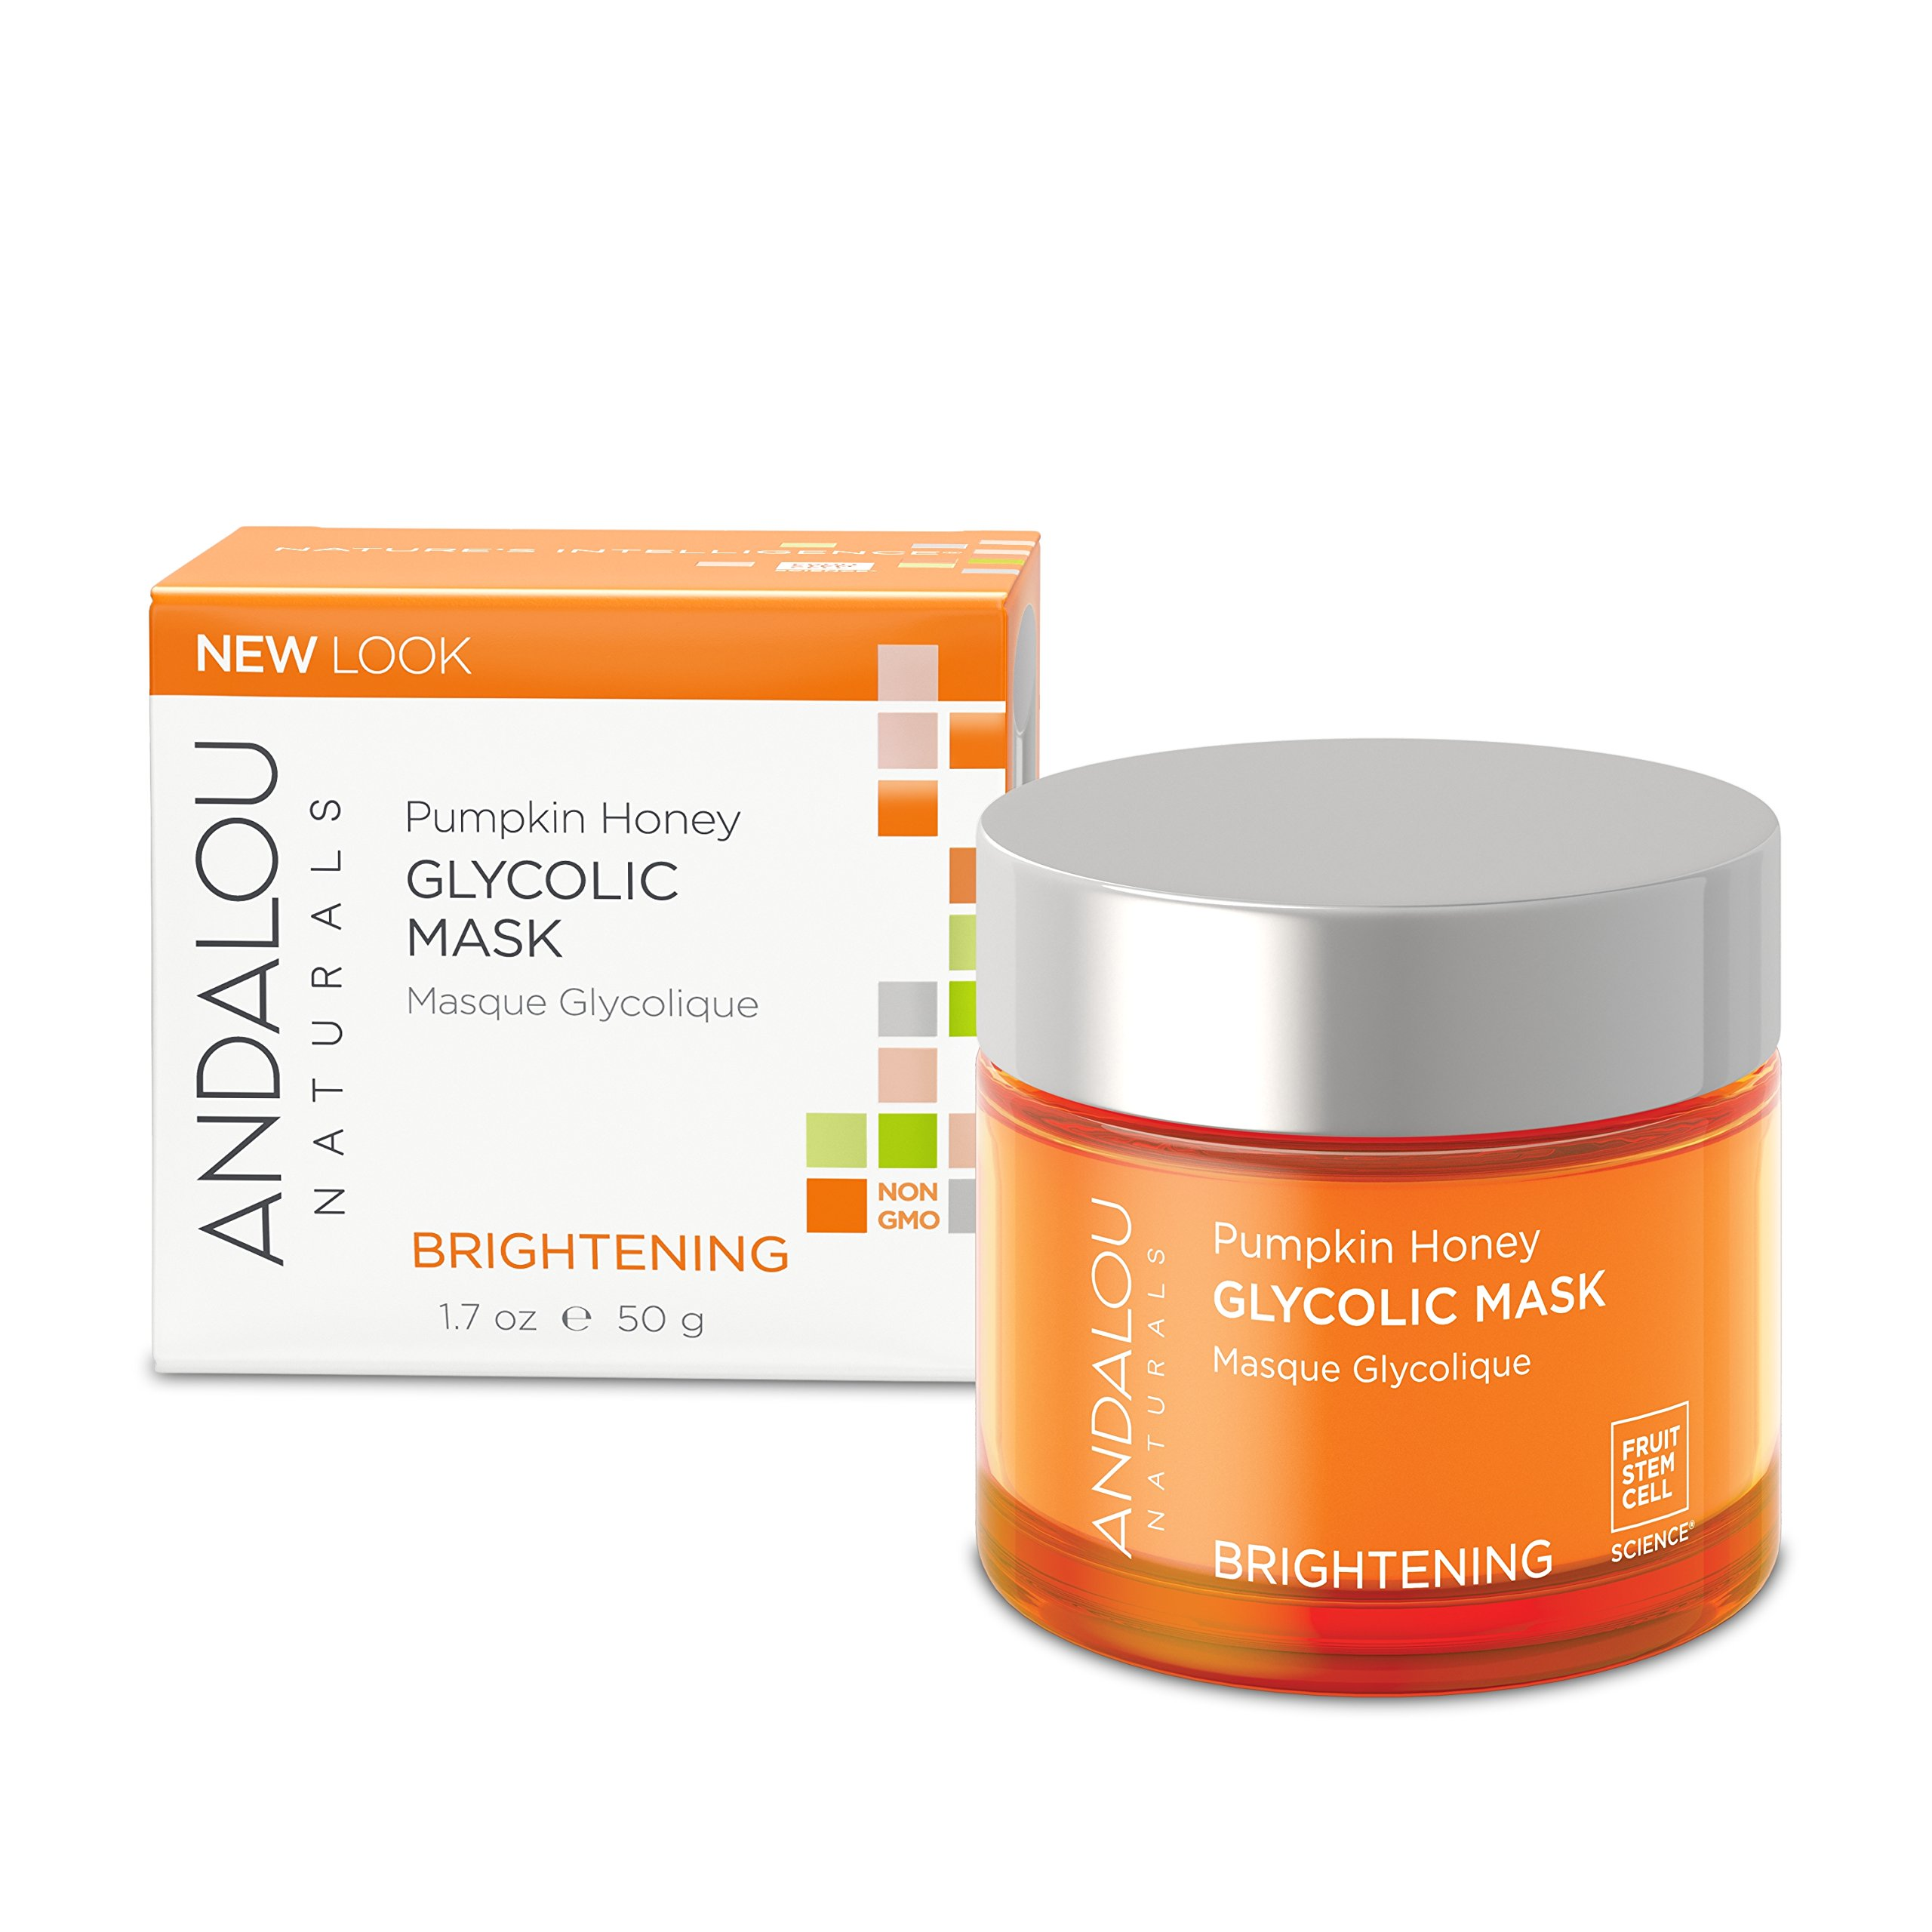 Andalou Naturals Pumpkin Honey Glycolic Mask, 1.7 oz, Cleans & Exfoliates Skin for Brighter, Toned, Youthful Looking Skin by Andalou Naturals (Image #6)